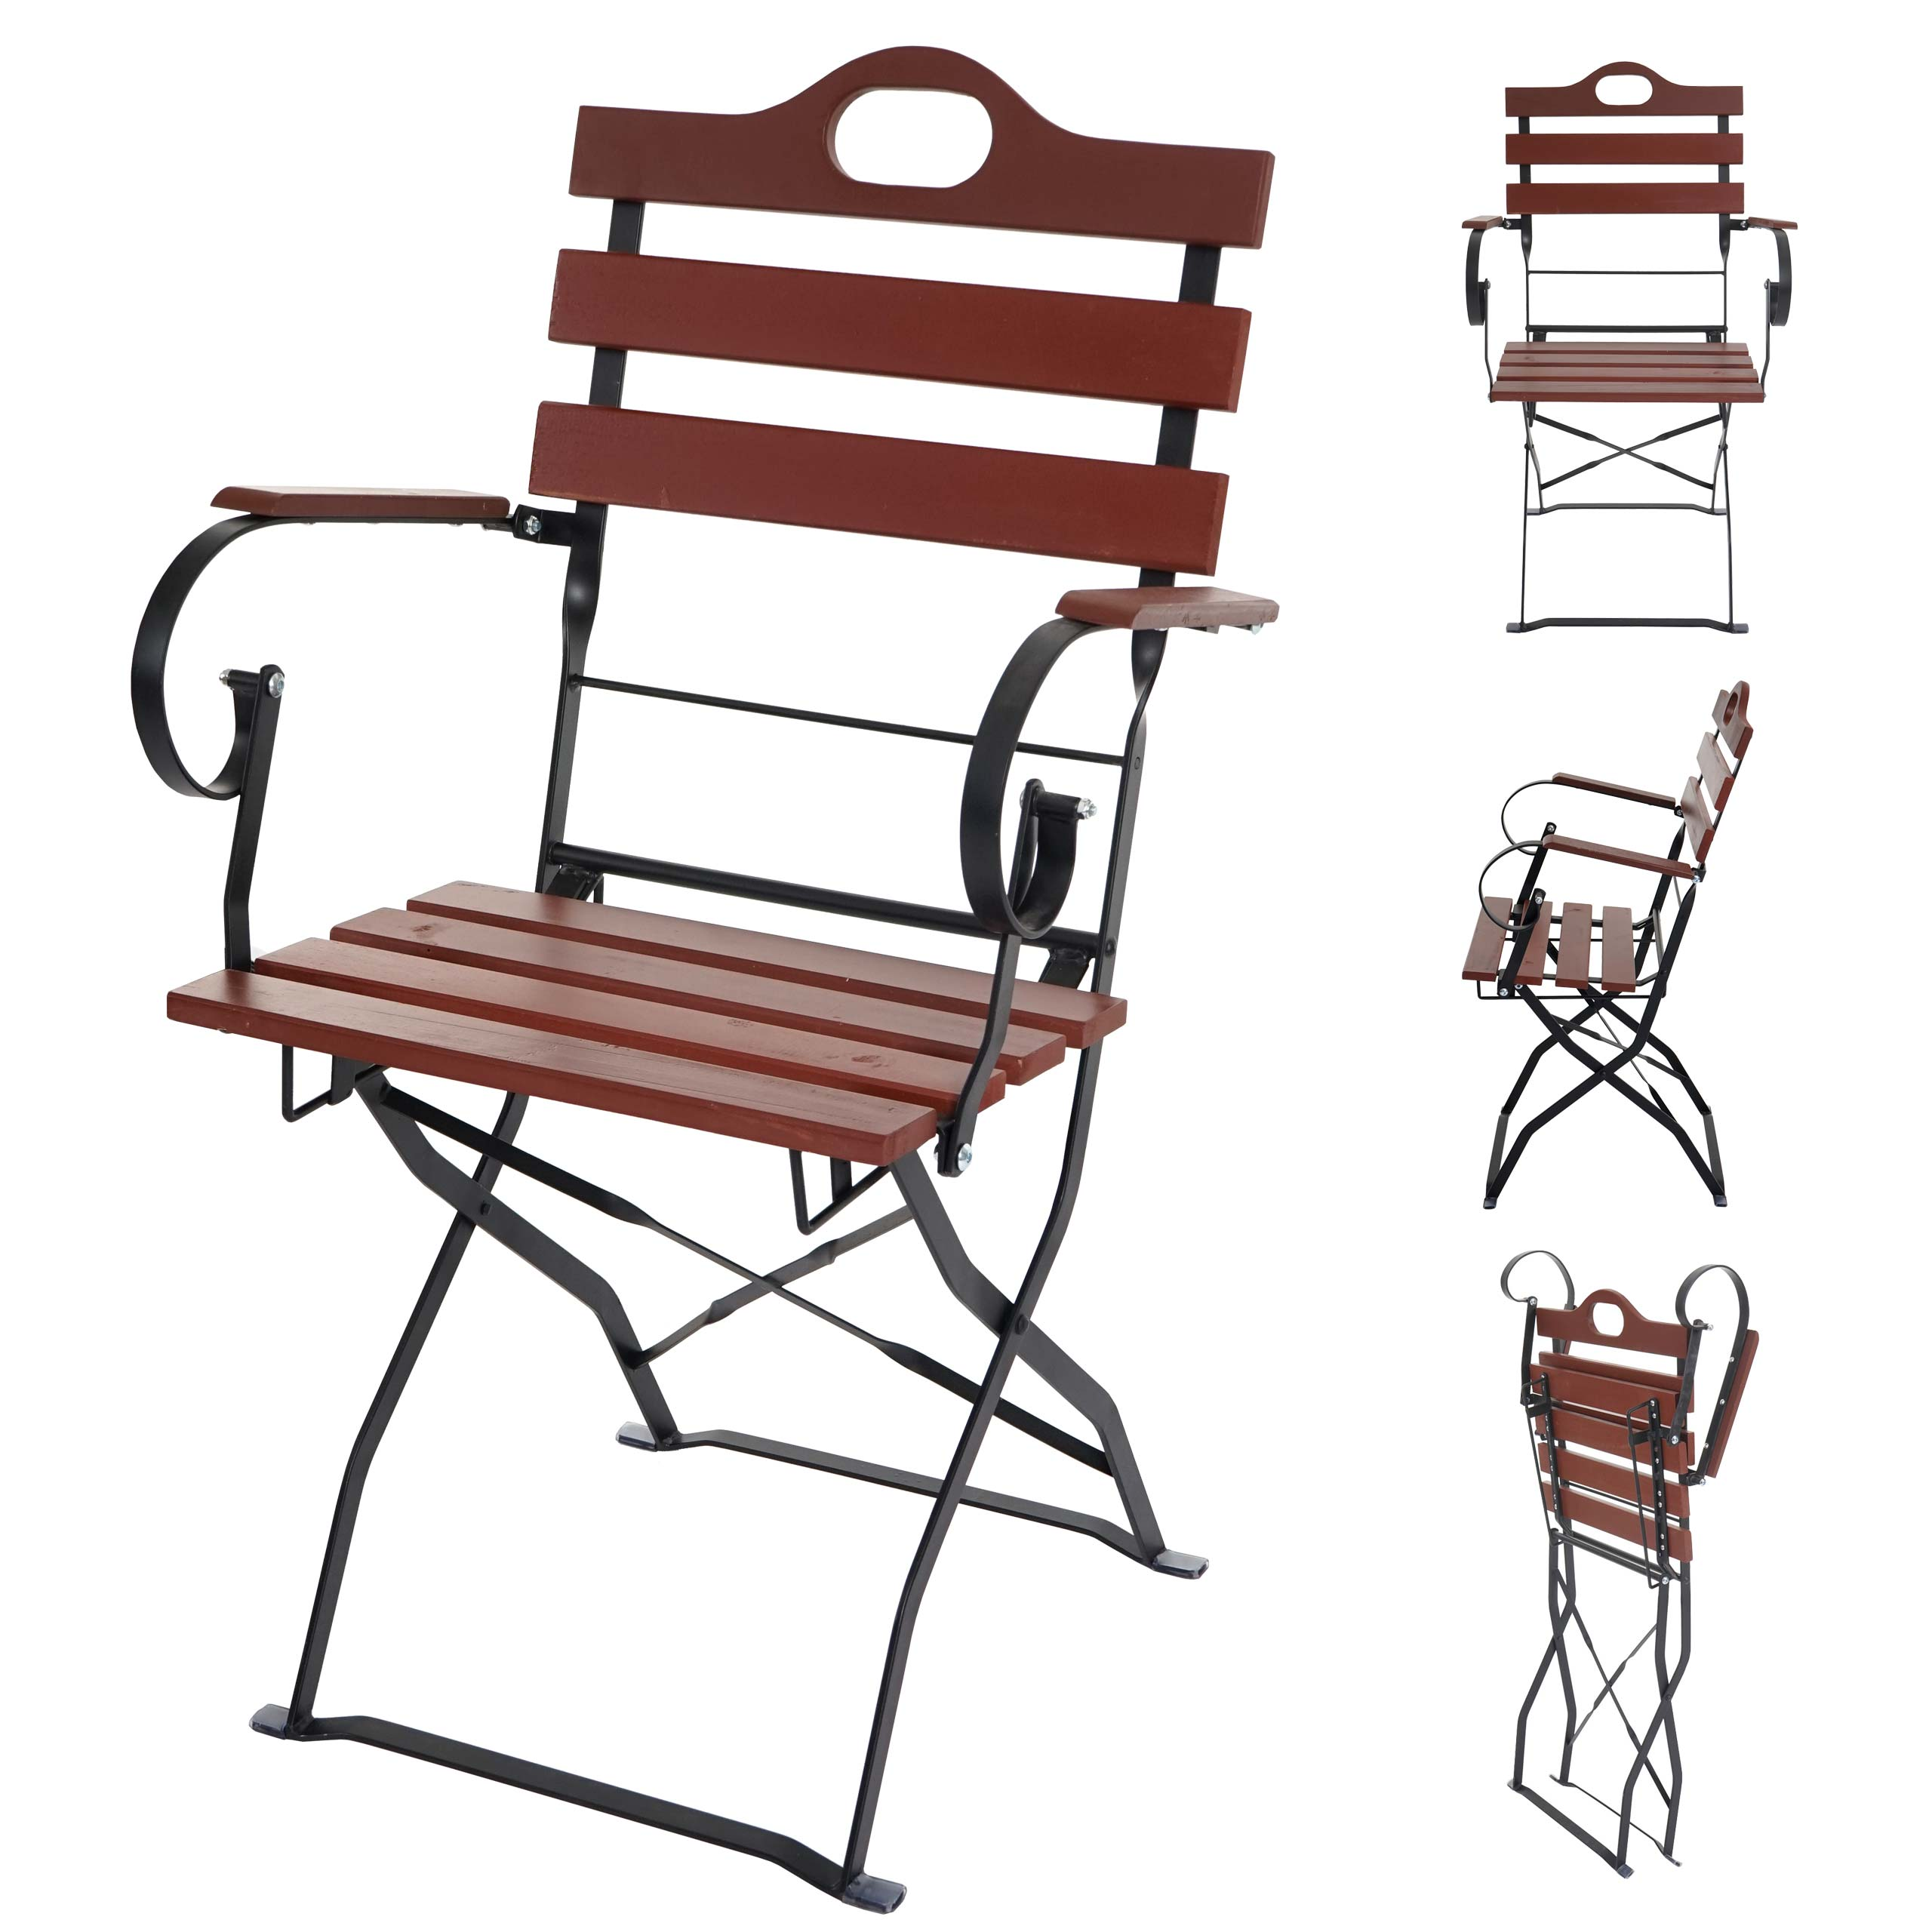 garten garnitur graz bistro set biergarten holz tisch st hle klappbar akazie ebay. Black Bedroom Furniture Sets. Home Design Ideas